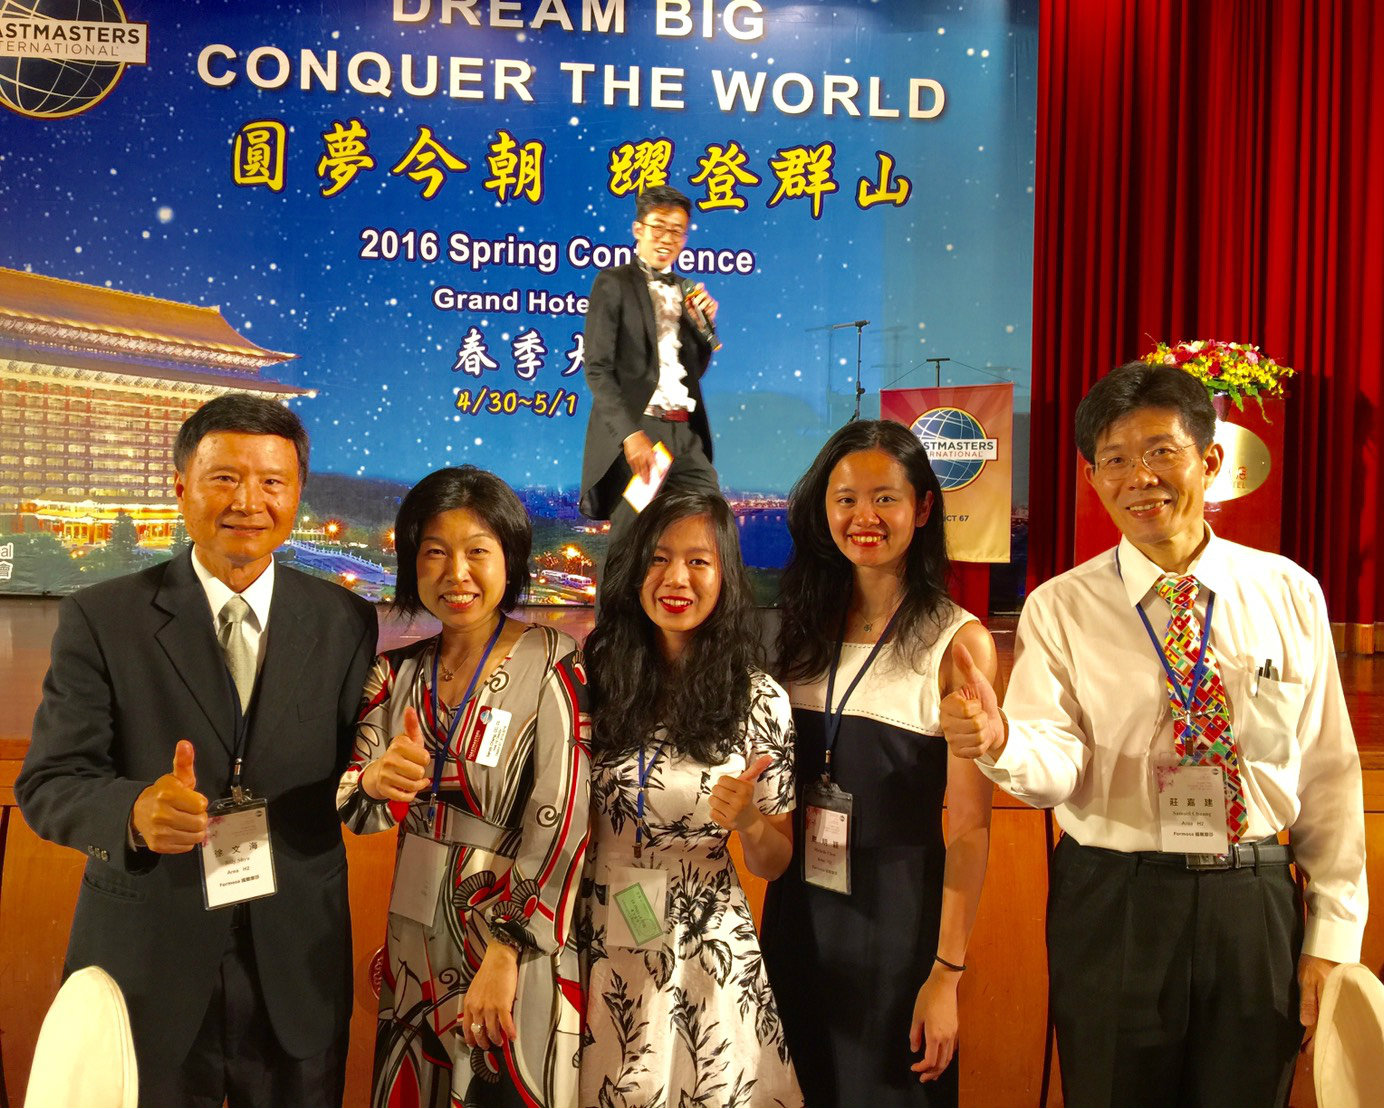 Some members also participate in the District Toastmasters Conventions held at the Grand Hotel in Taipei, Taiwan. (Image: Billy Shyu/ Vision Times)